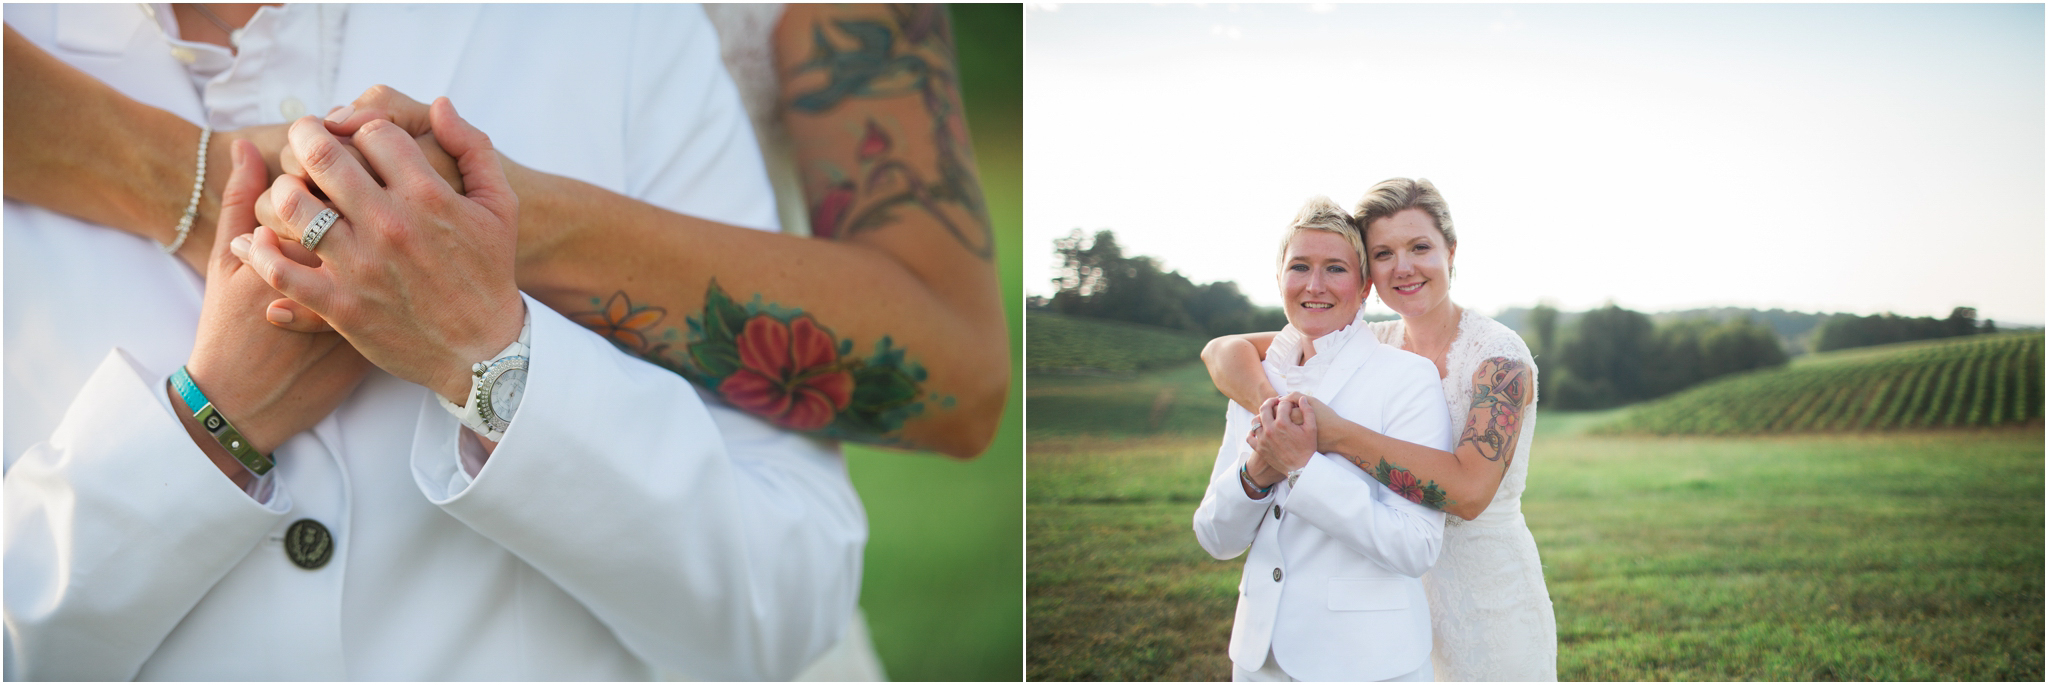 bethany-grace-photography-linganore-winecellars-same-sex-lgbtq-pink-blue-winery-outdoor-wedding-19.JPG